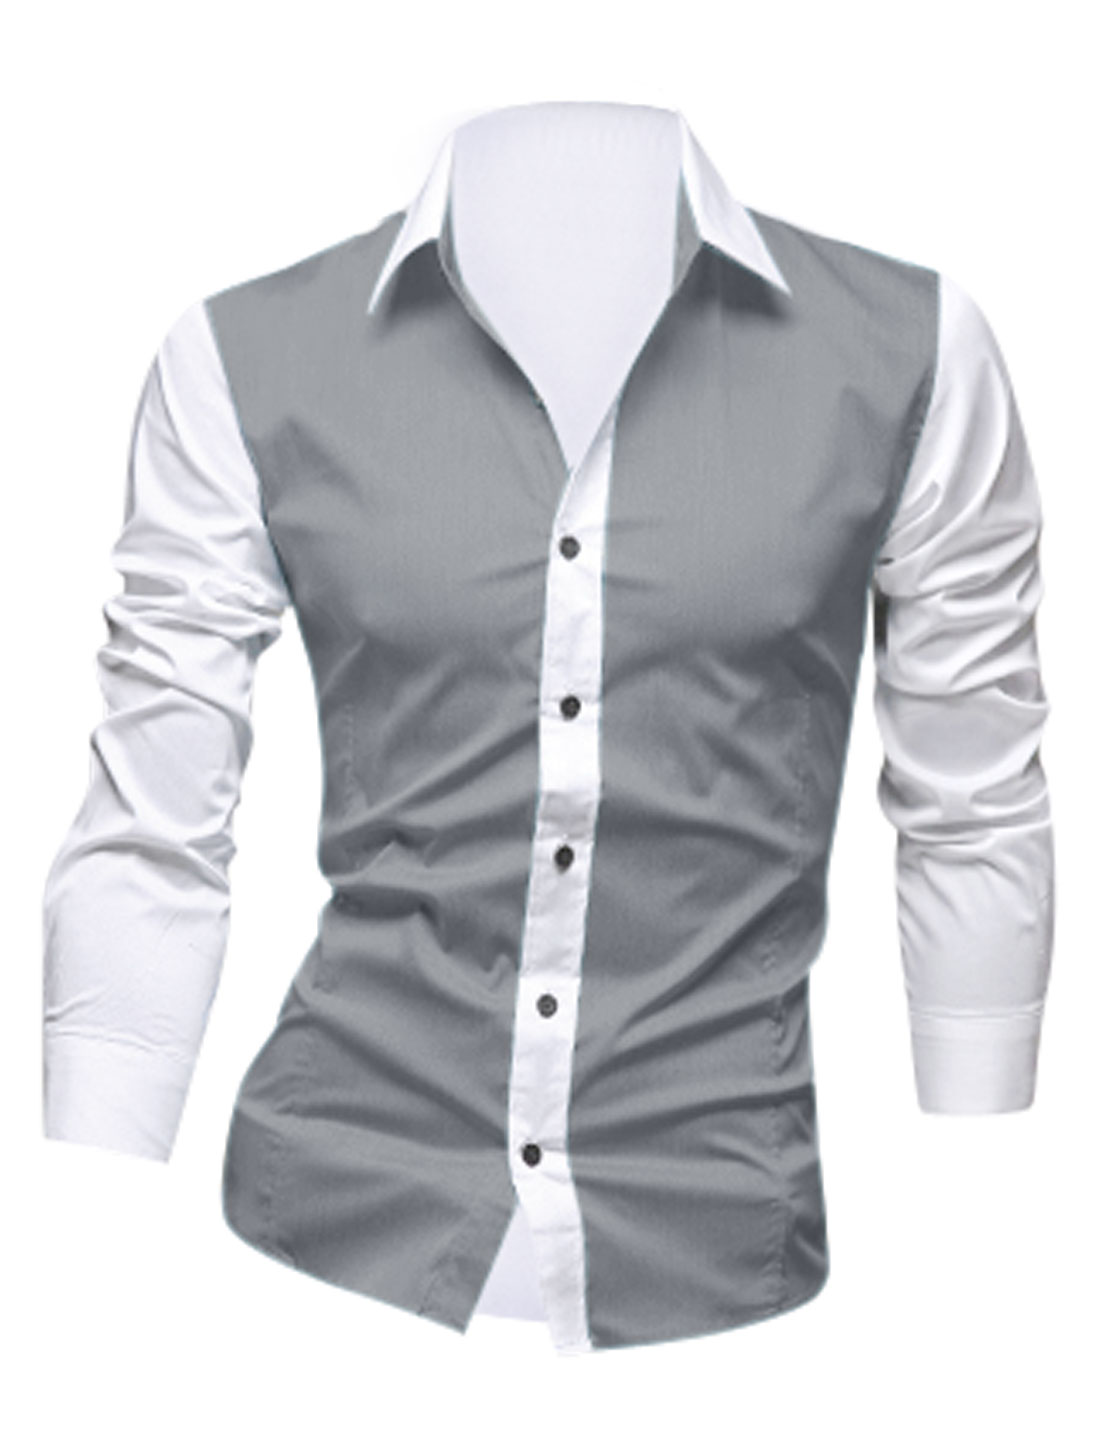 Man Point Collar Single Breasted Color Block Gray White Shirts M